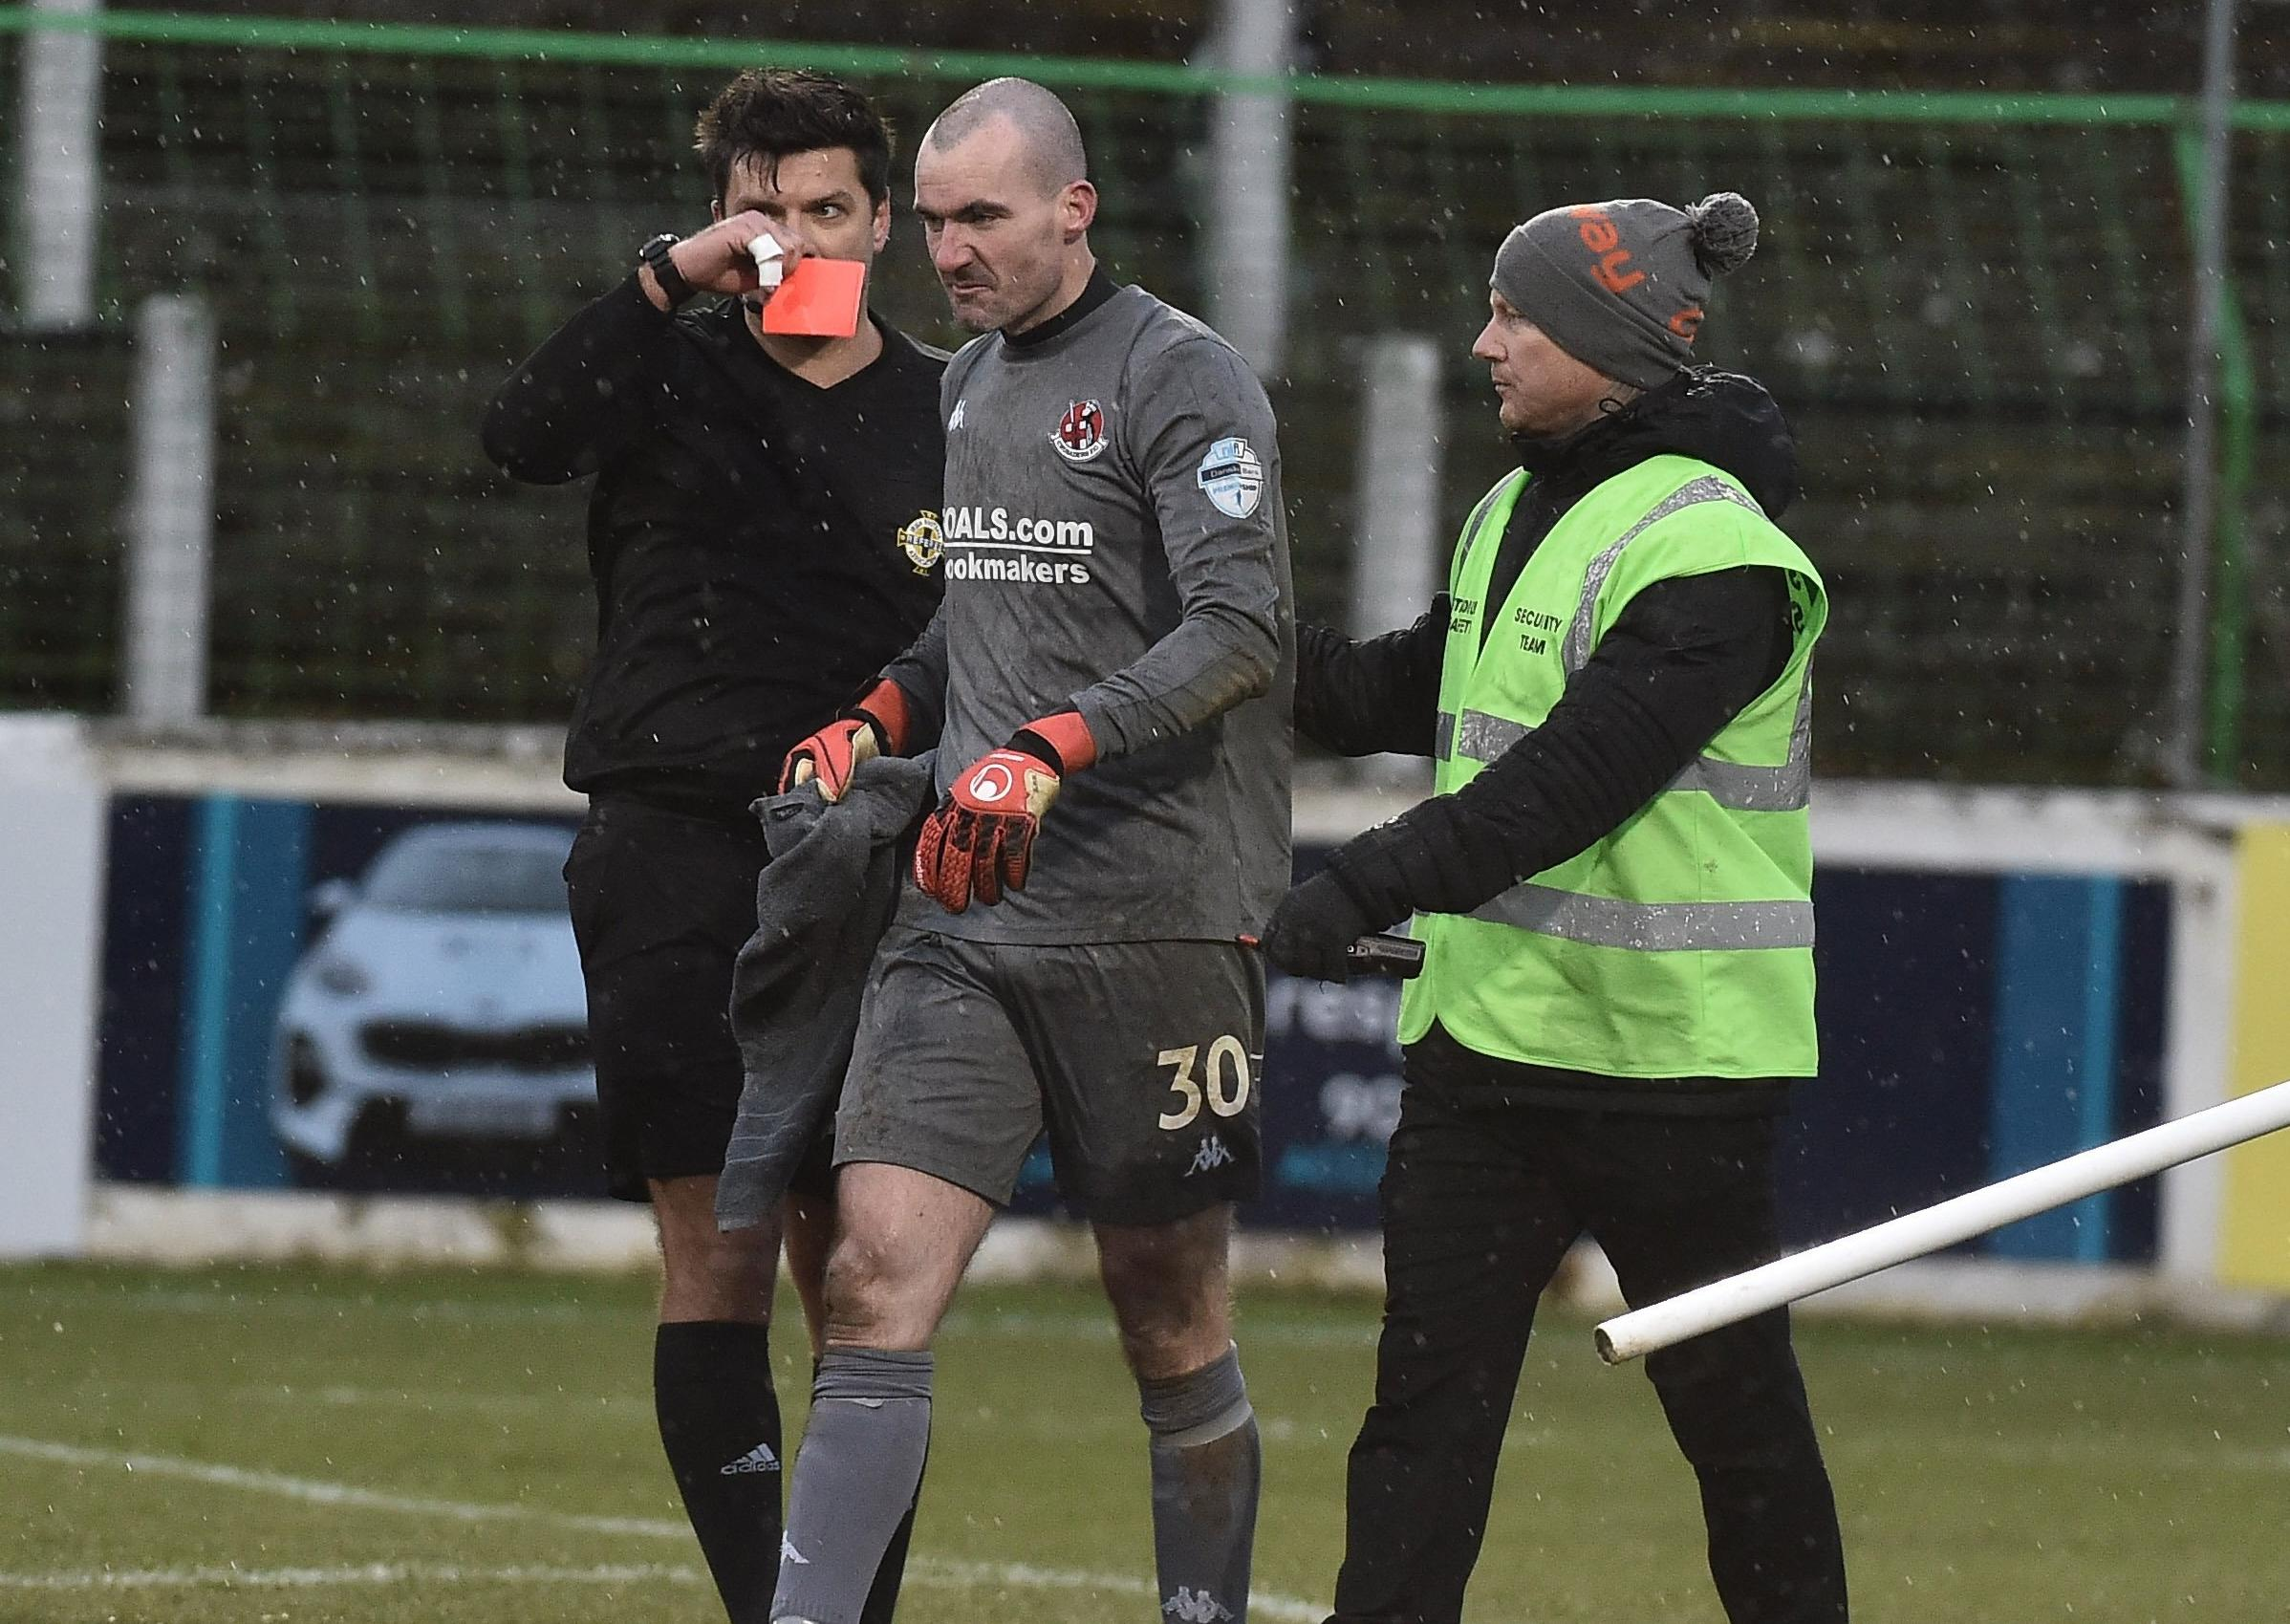 Referee Andrew Davey reveals fourth official Raymond Crangle confirmed Glentoran penalty call against Crusaders.